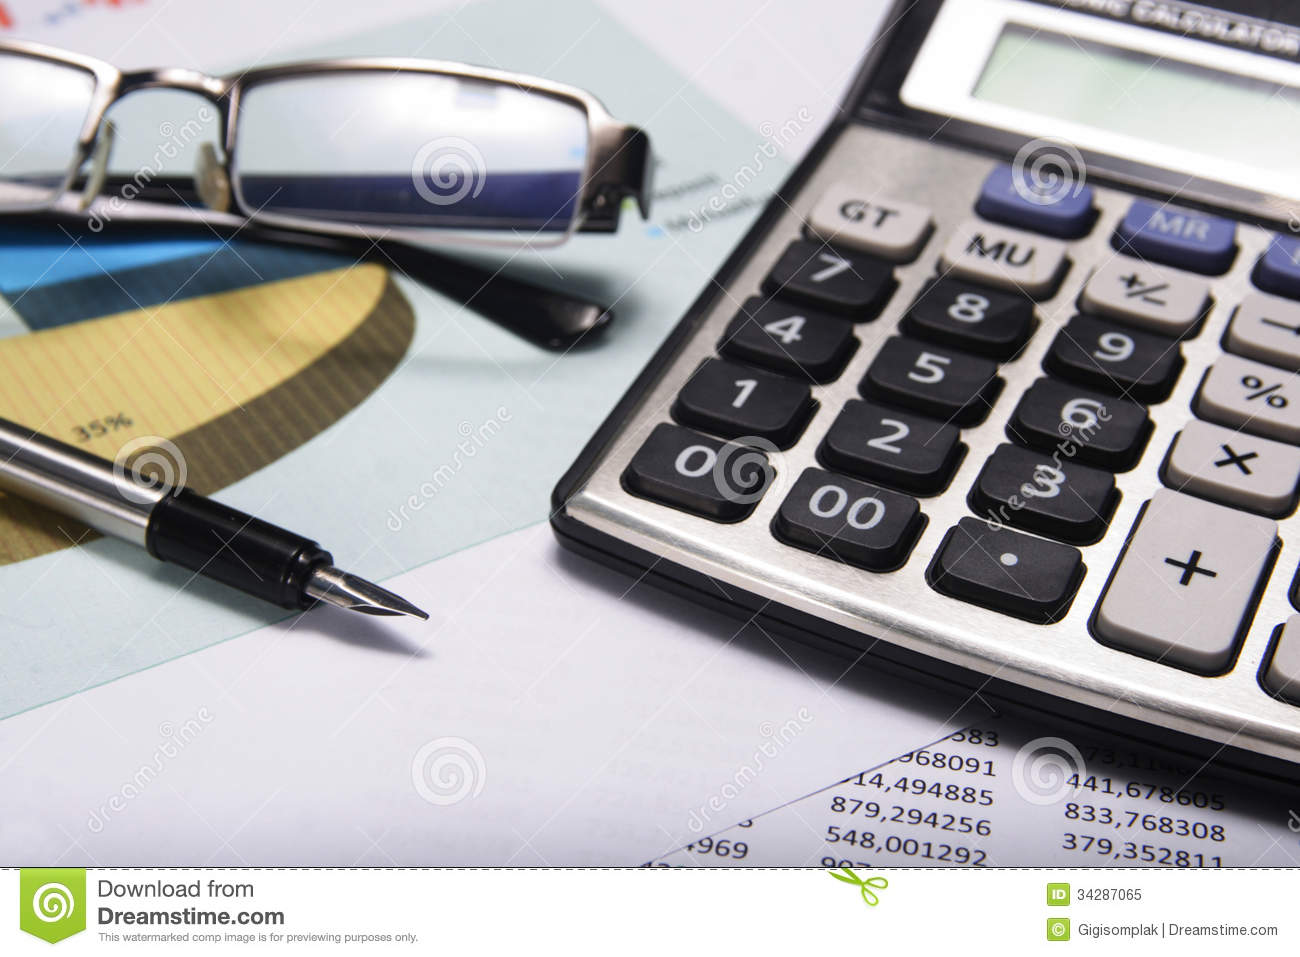 accounting-finance-illustration-concept-34287065.jpg